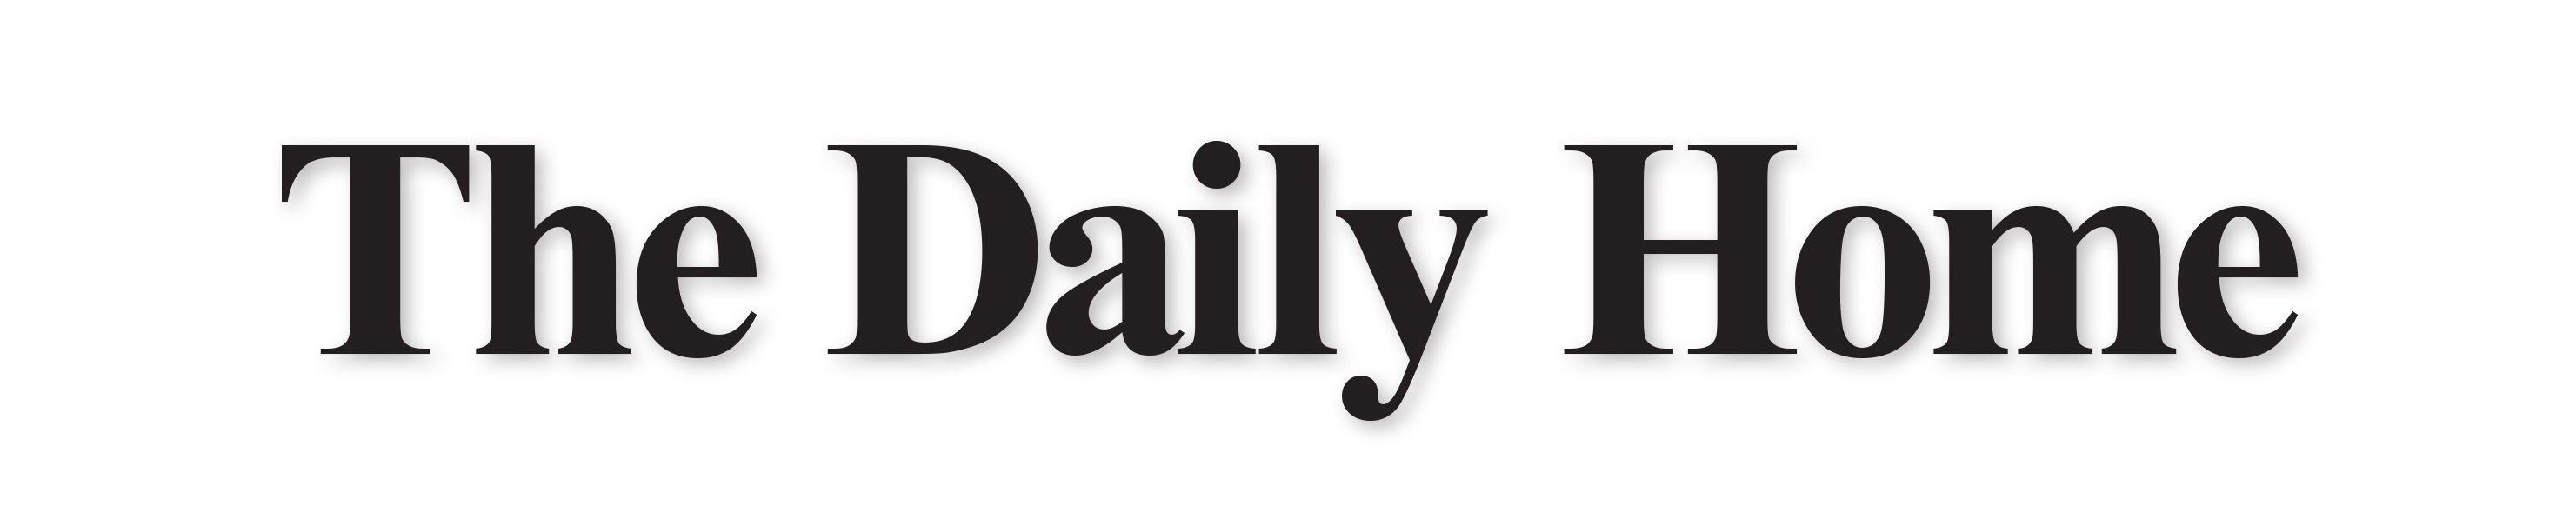 the daily home logo